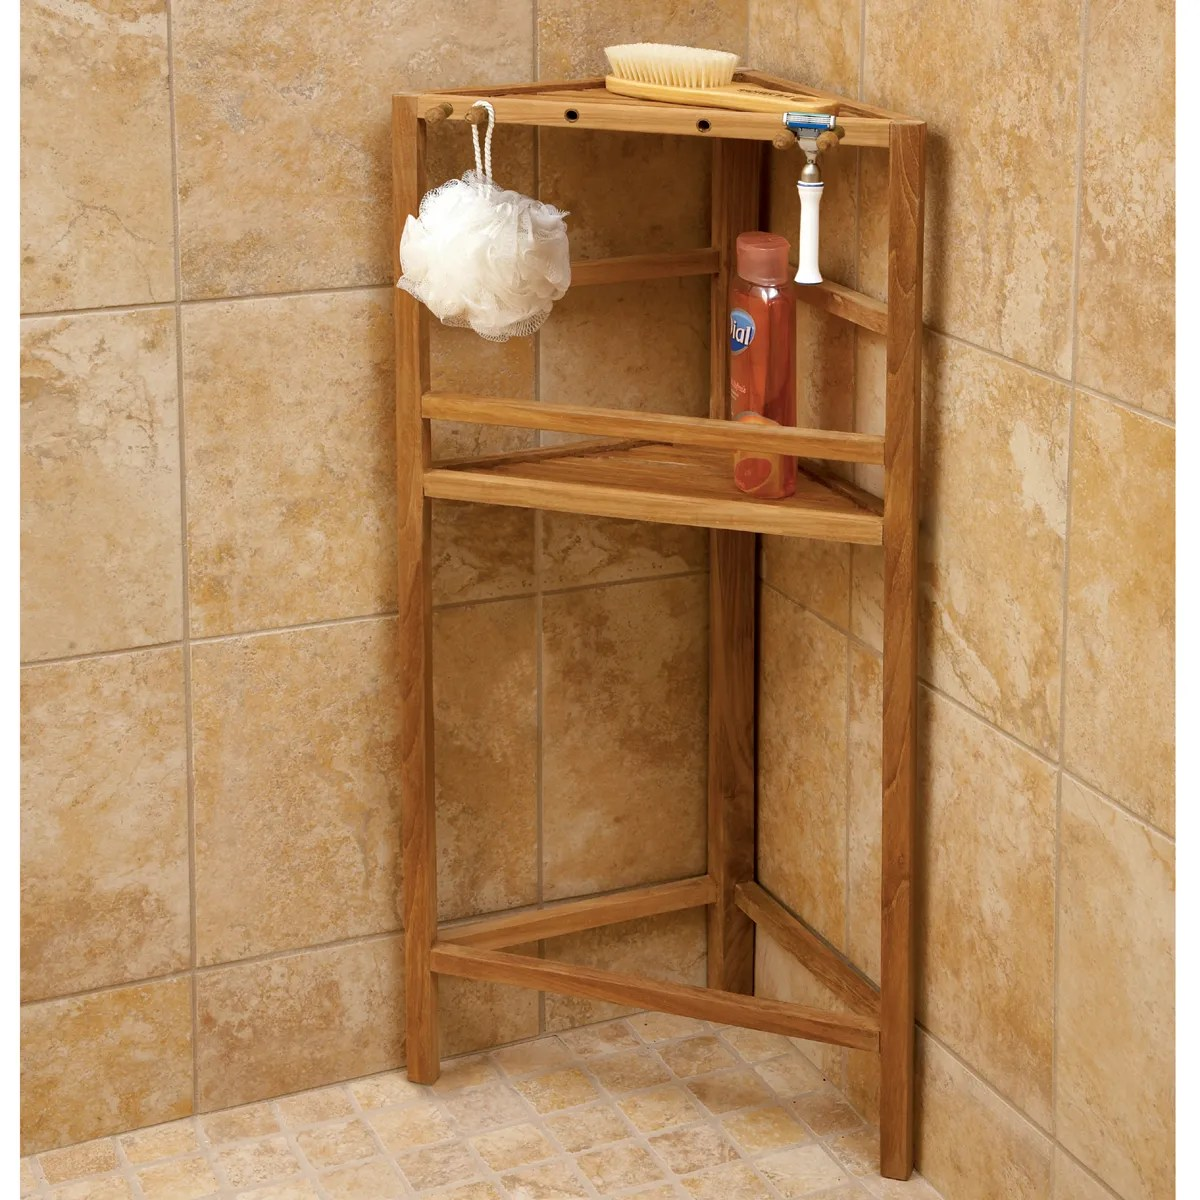 Teak Shower Shelving From Sportys Preferred Living